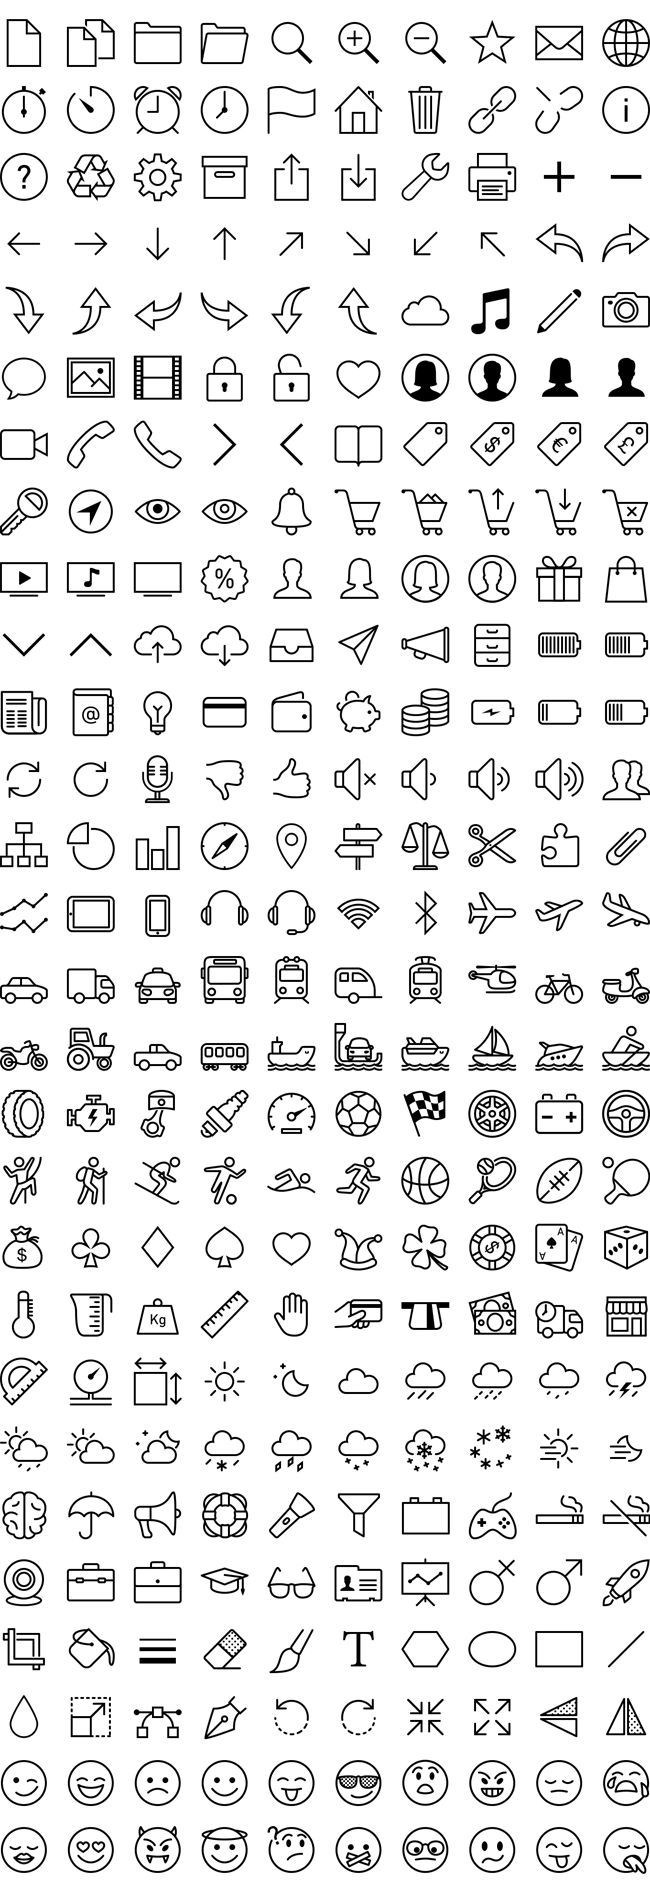 280 Free Ios7 Icons Vector Pack Free Vector Site Download Free Vector Art G Art Download Free Icons Bullet Journal Doodles Sketch Notes Lettering